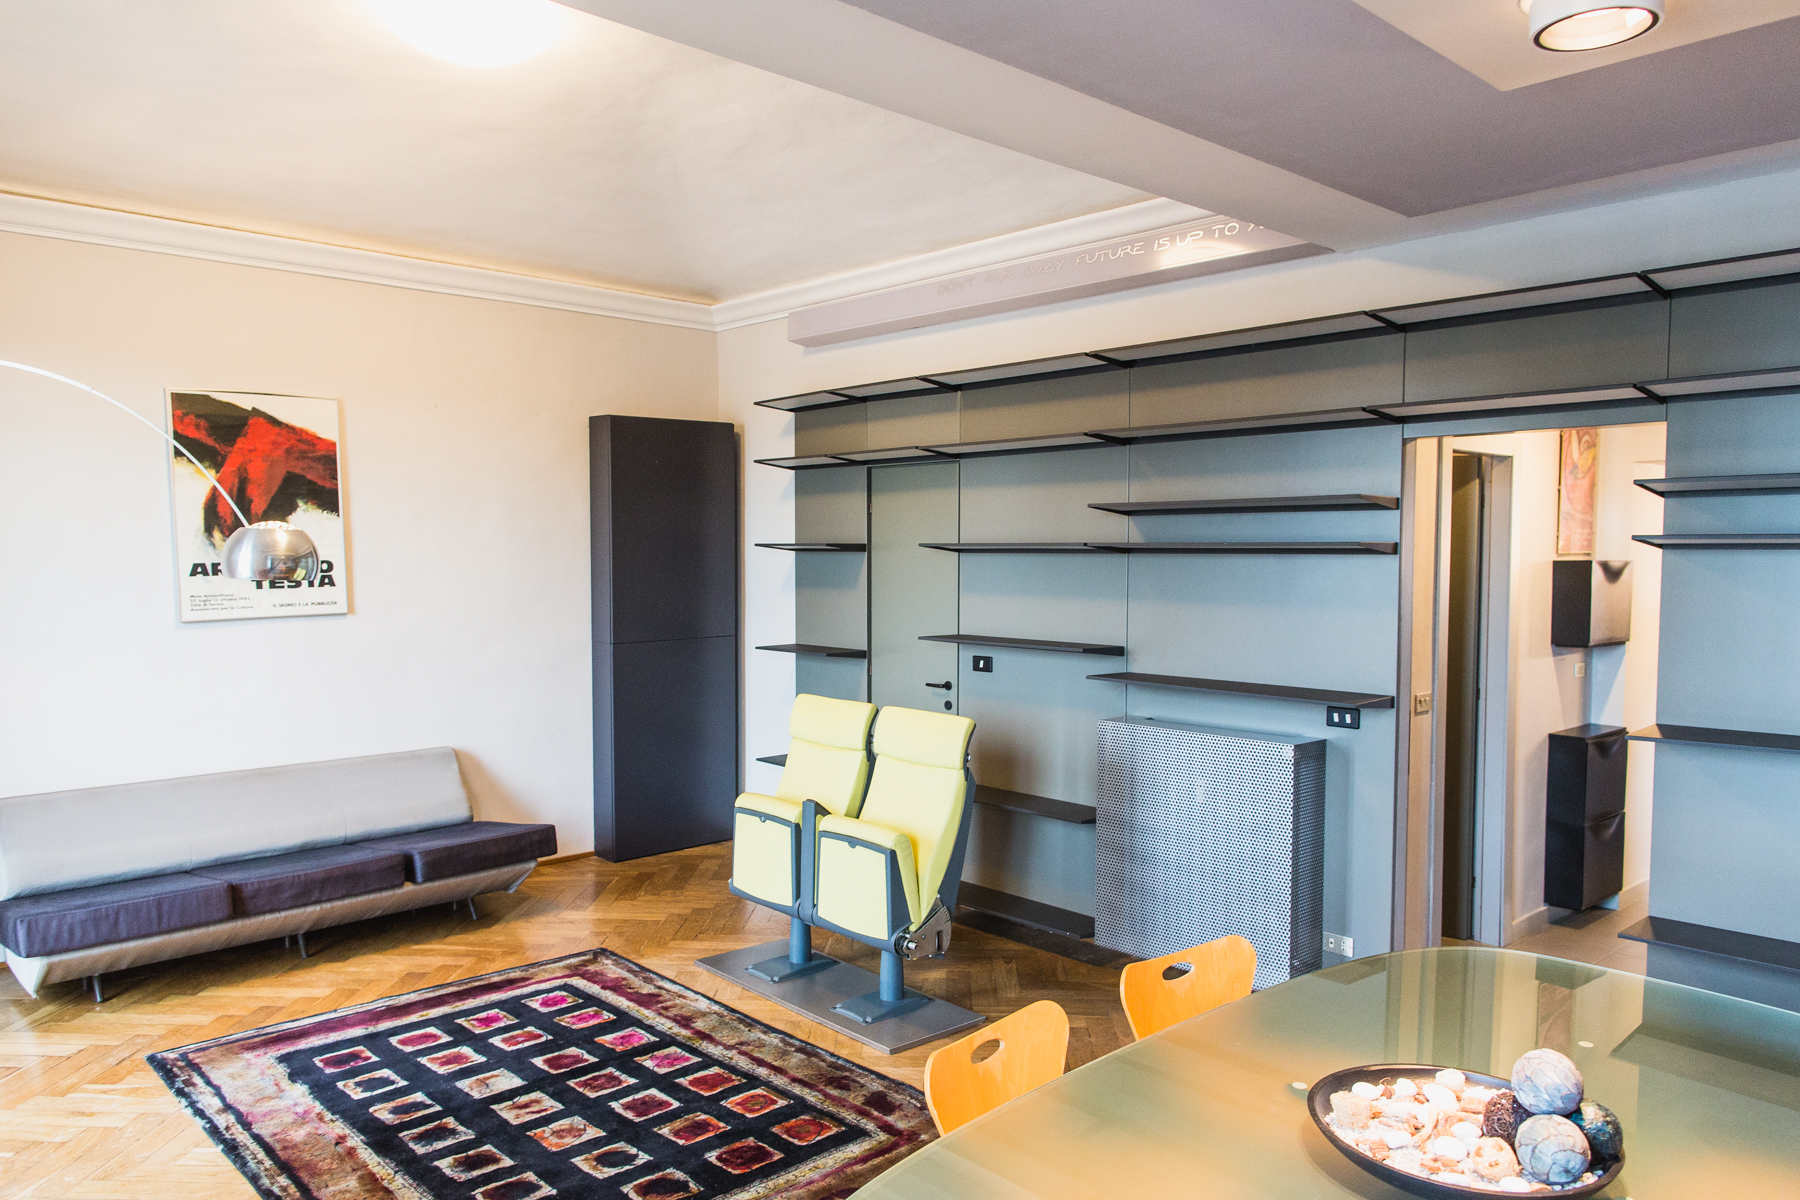 Additional photo for property listing at Essential and modern style apartment Corso Guglielmo Marconi Torino, Turin 10125 Italy